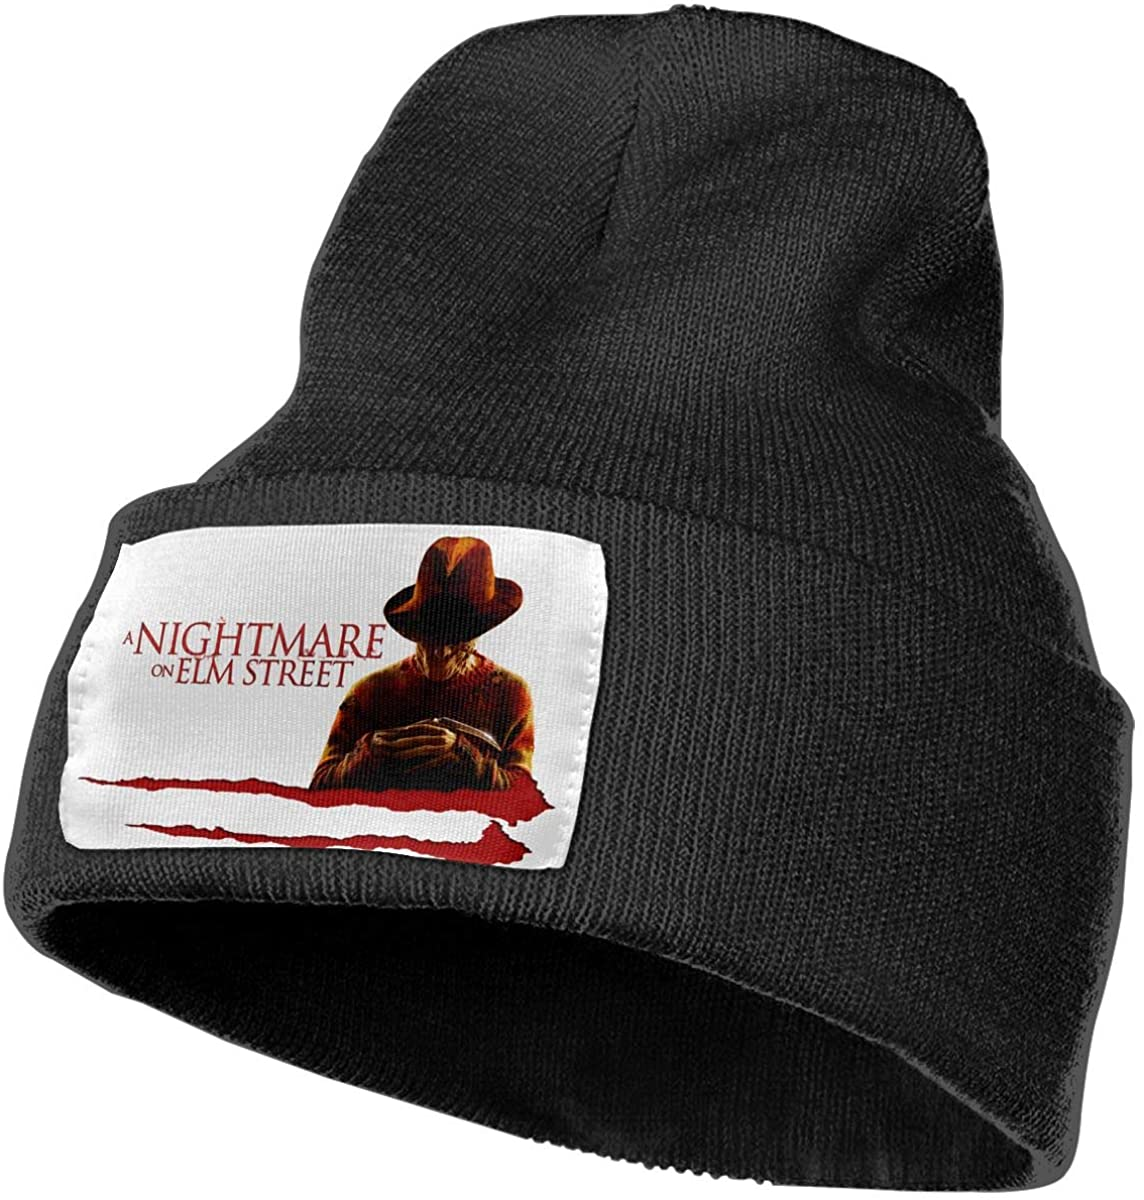 A Nightmare On Elm Street Knitted Hat Keeps Warm in Winter, Unisex